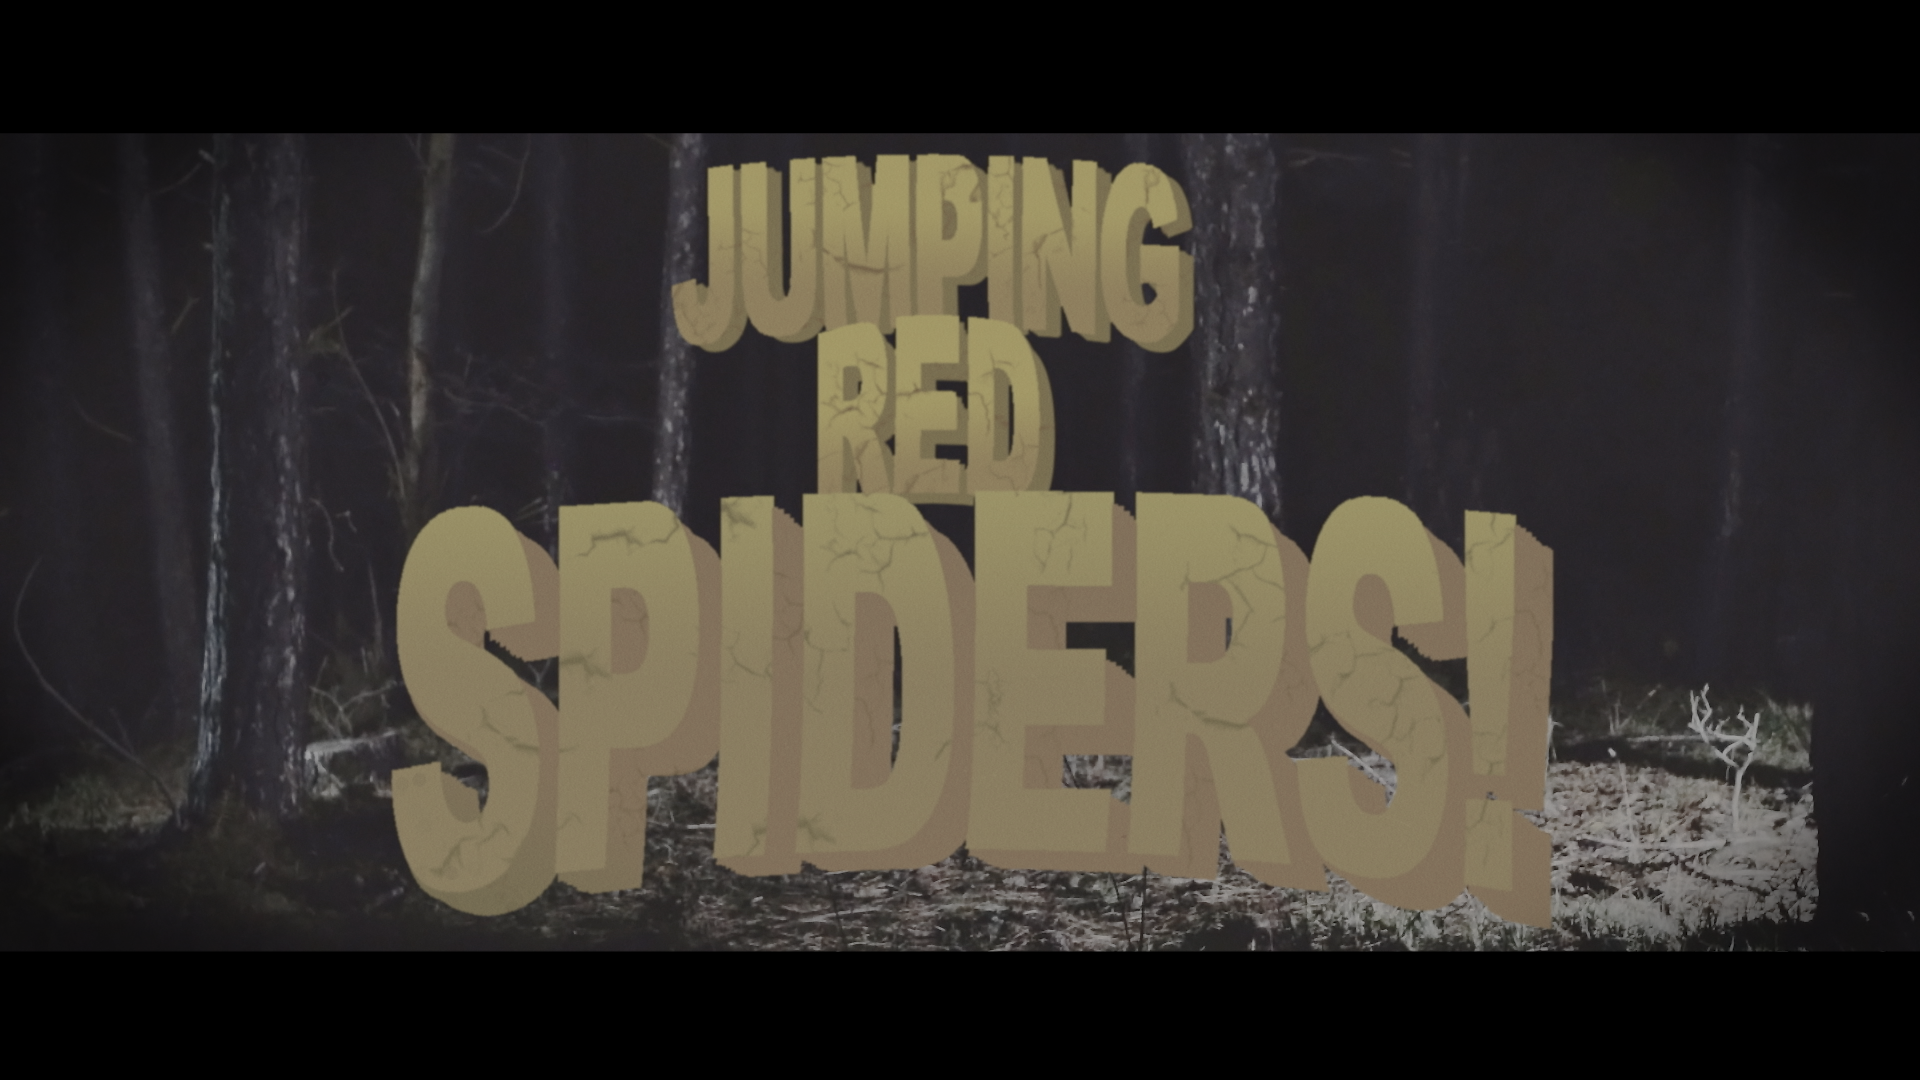 Al the coordinator – Jumping red spiders